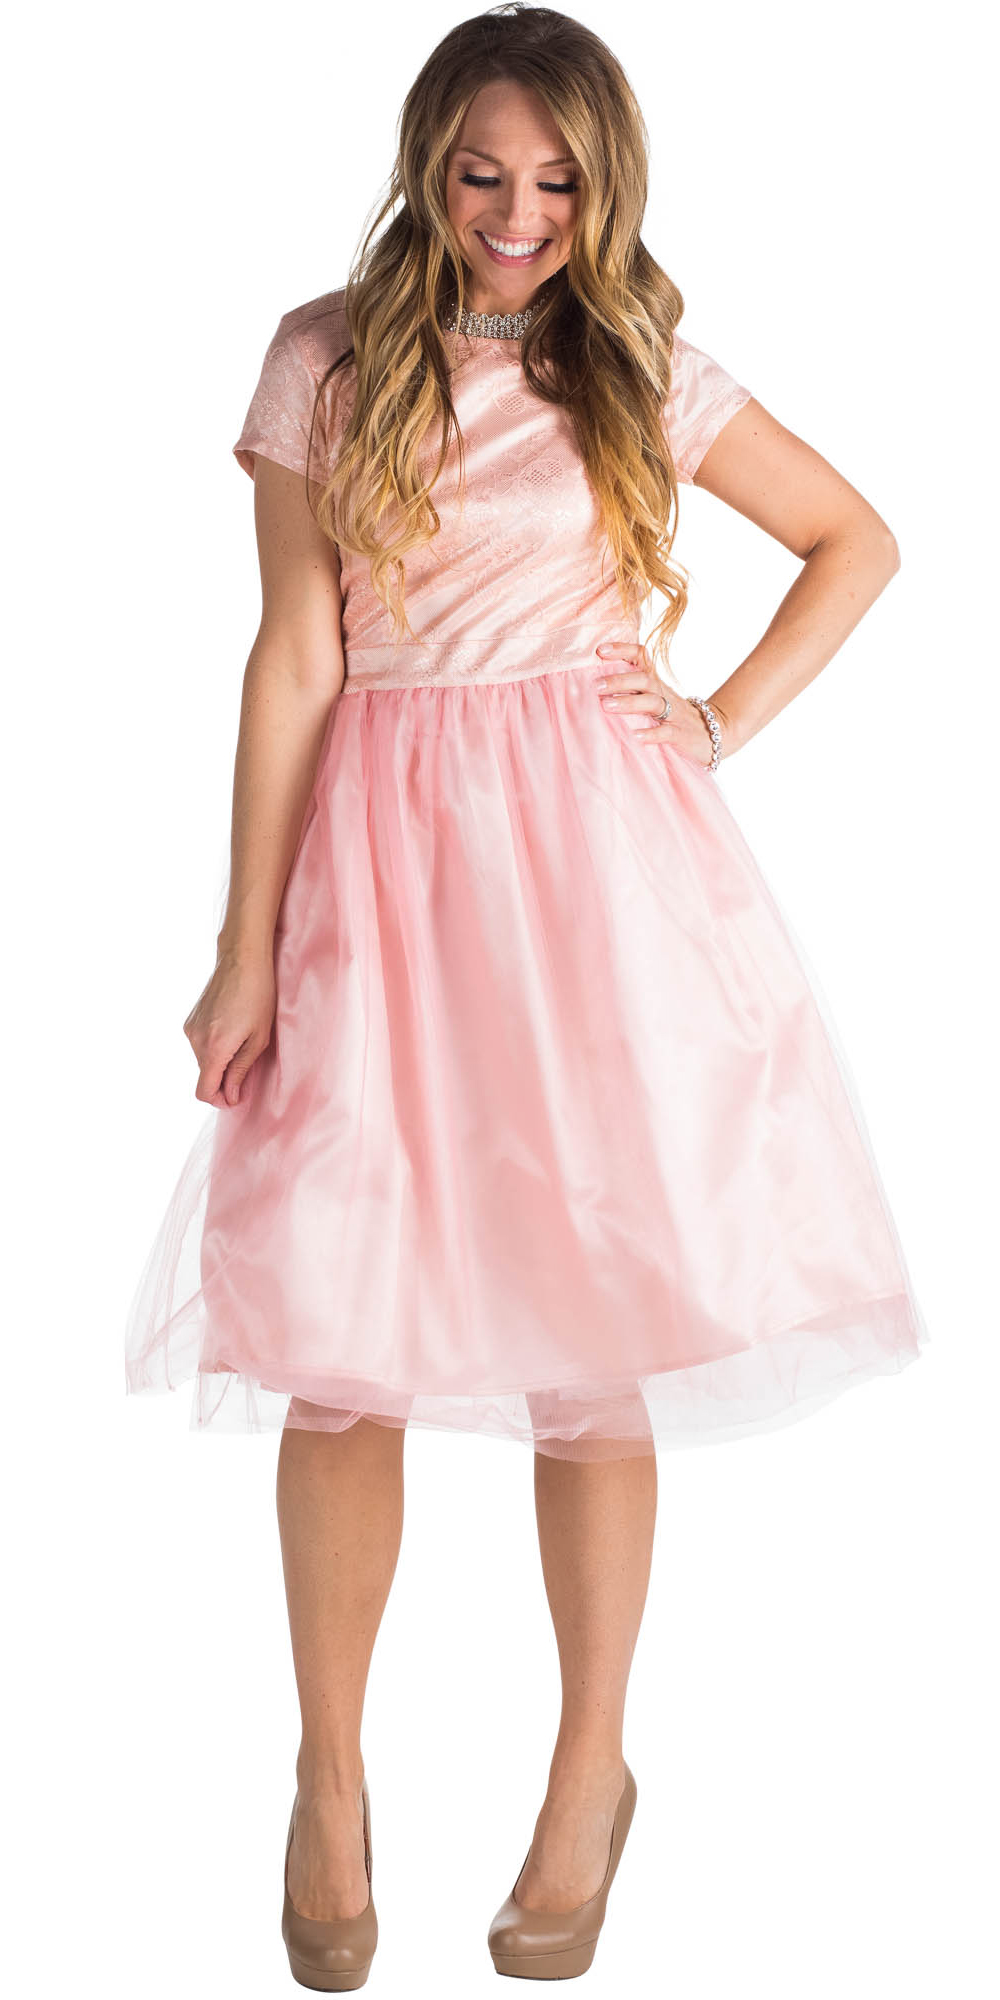 Jenclothings bella semi formal modest dress in pink bella tulle modest prom bridesmaid dress blush pink pink champagne ombrellifo Images